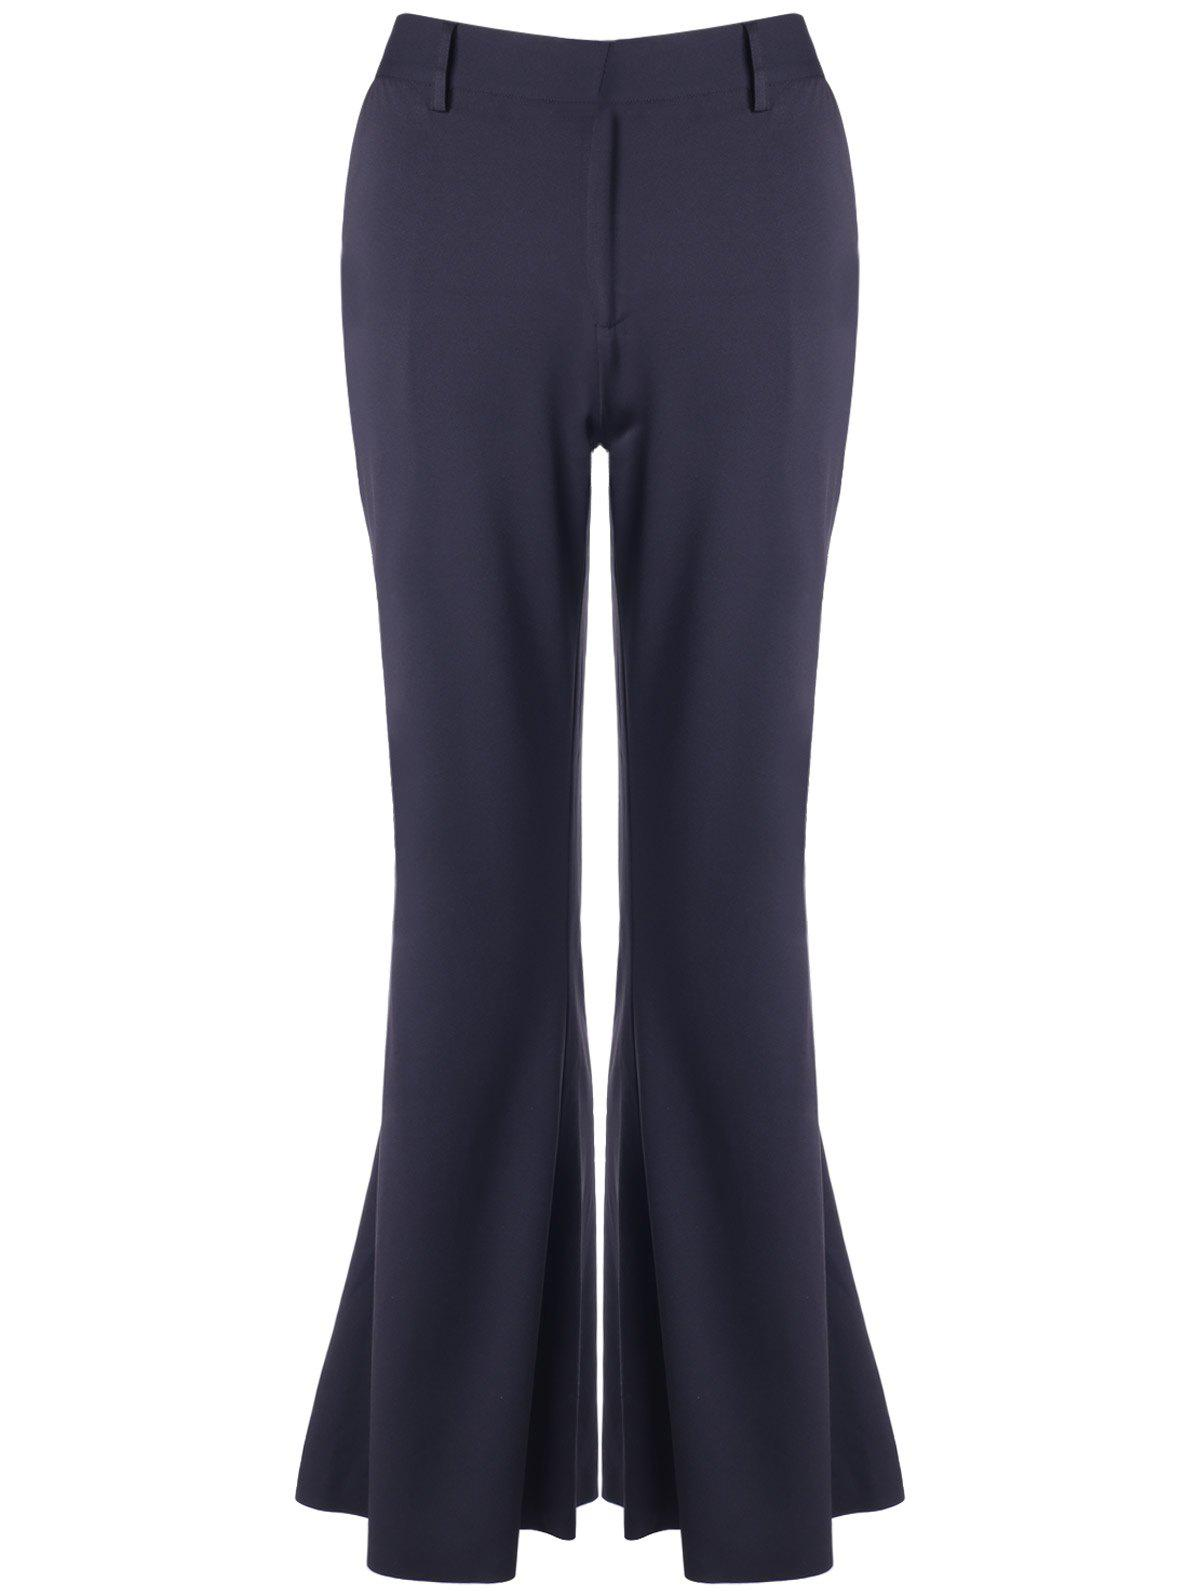 Stylish Skinny Black Trousers For Women